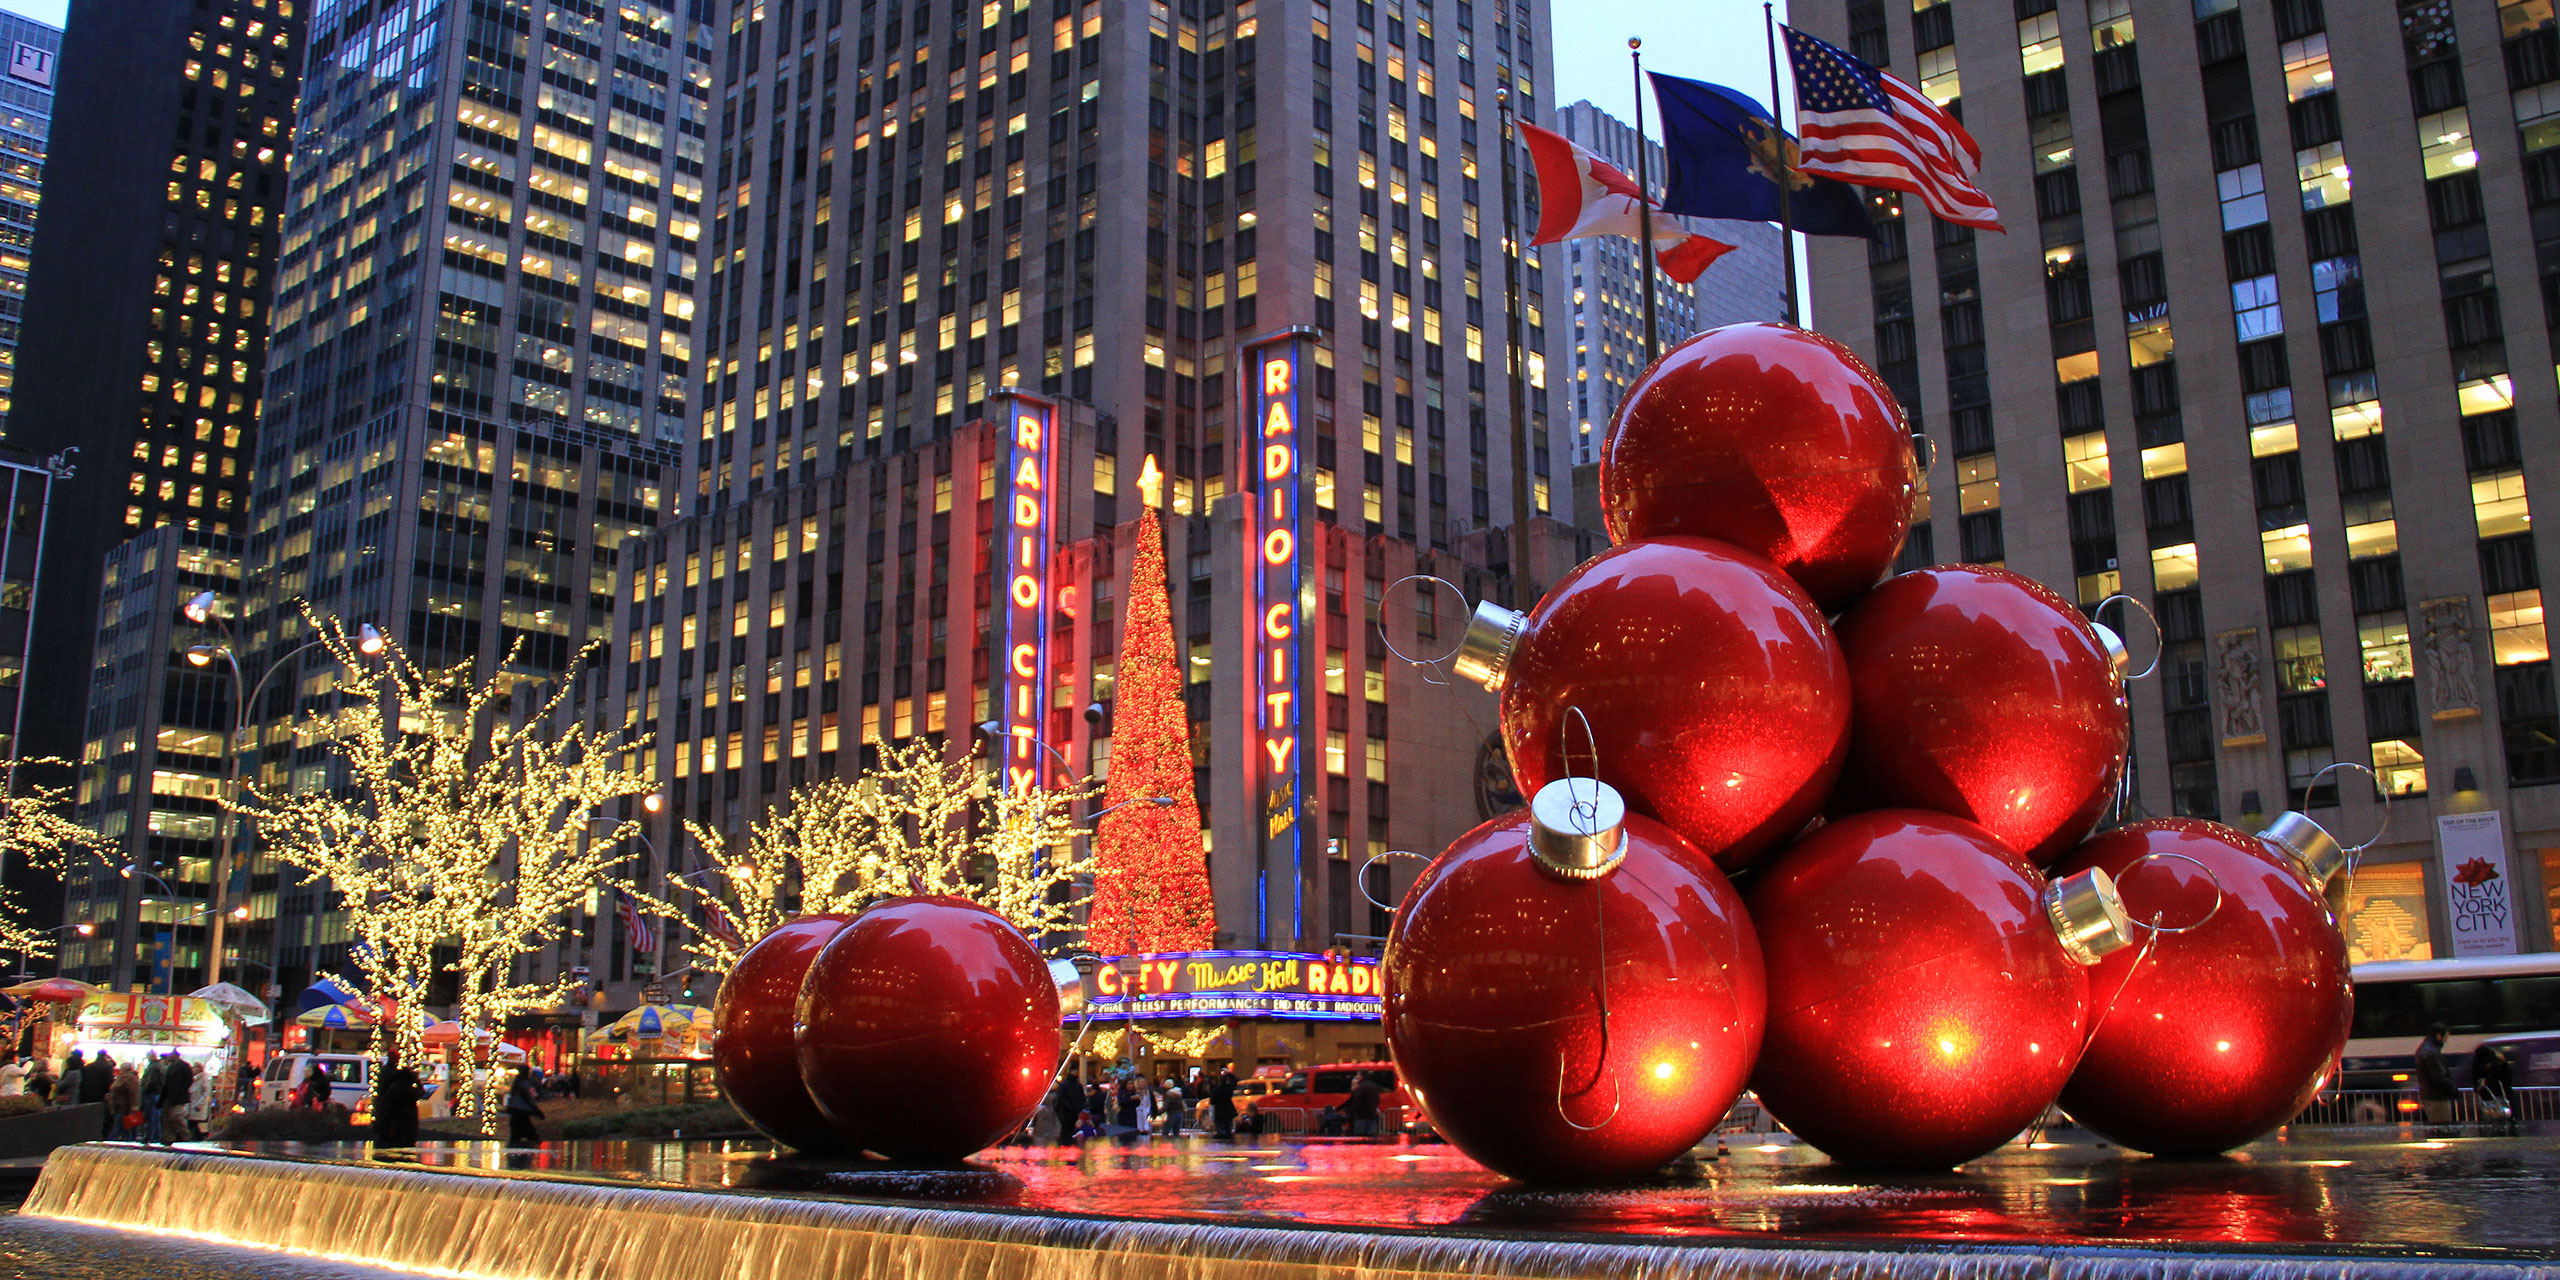 Giant Christmas Tree Ornaments in Rockefeller Center; Courtesy of TerraceStudio/Shutterstock.com